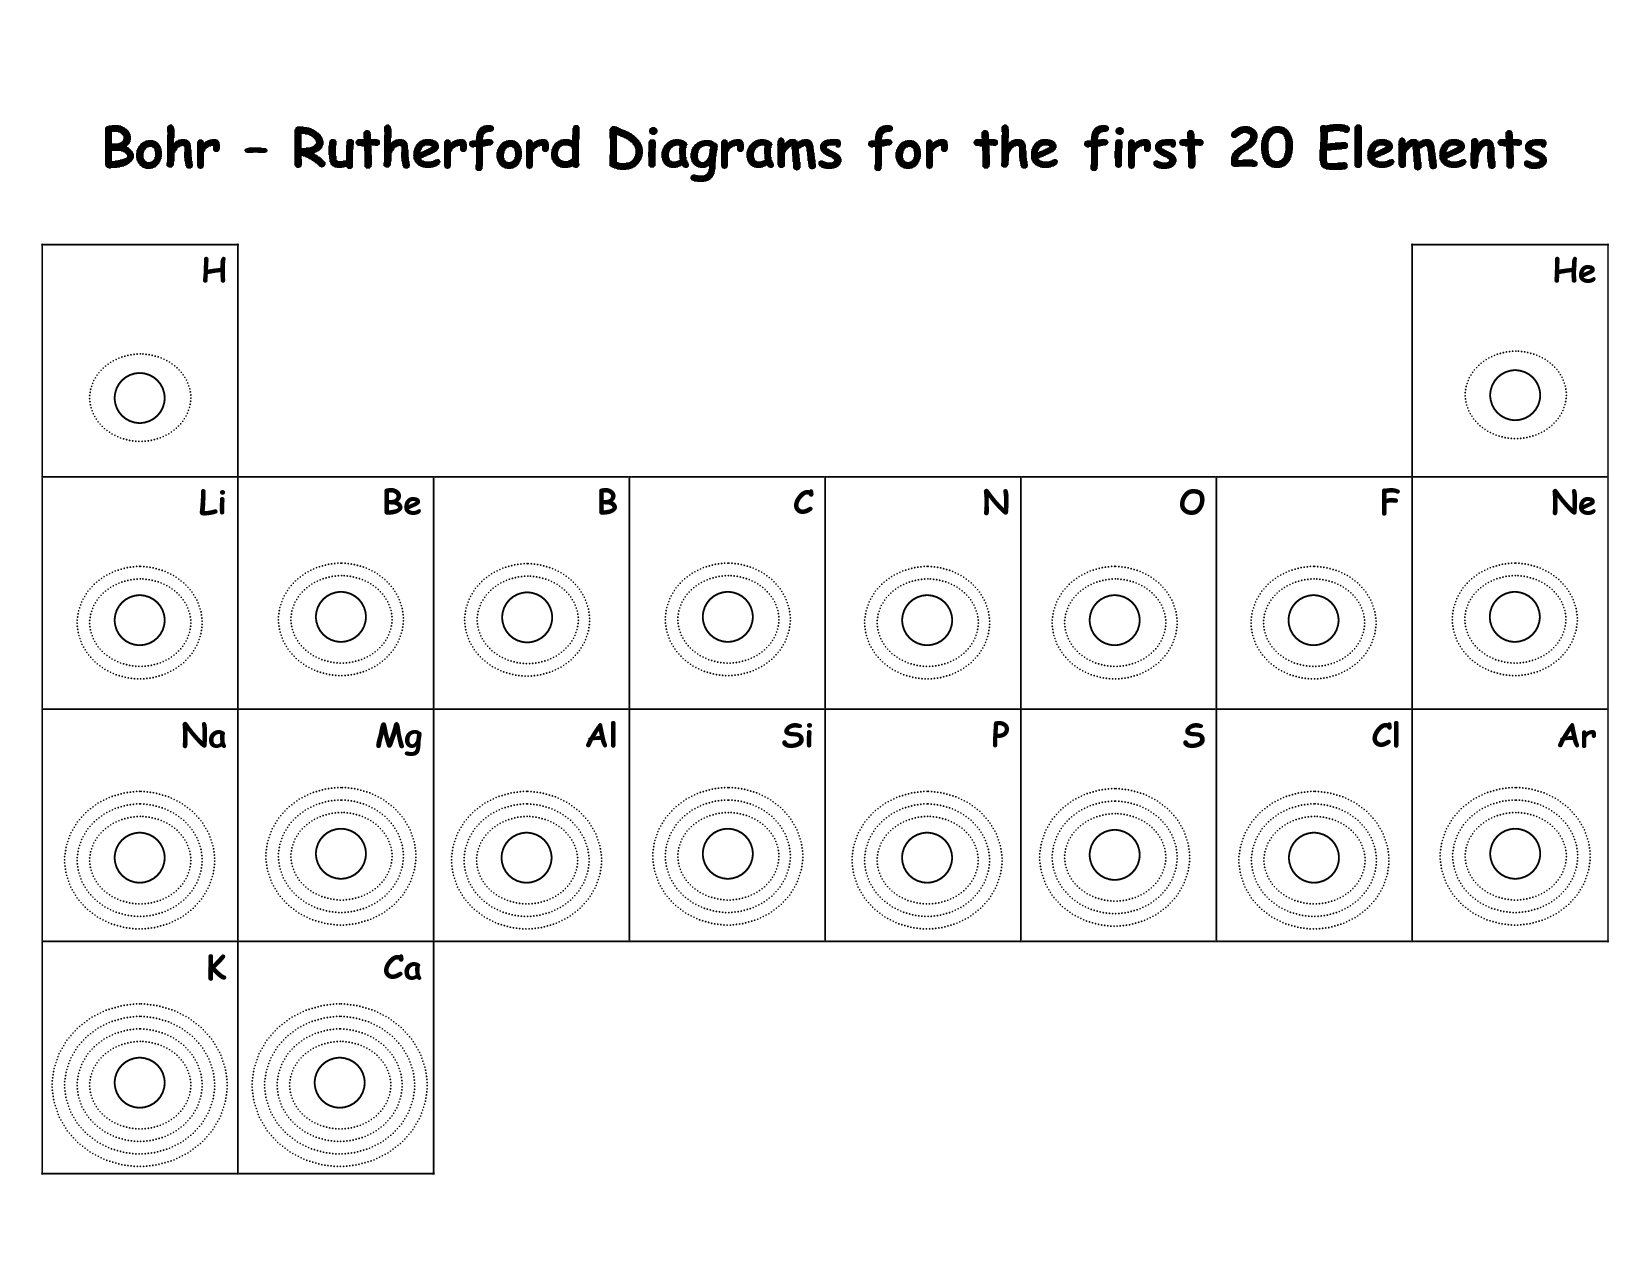 blank bohr model worksheet blank fill in for first 20 elements physical science pinterest. Black Bedroom Furniture Sets. Home Design Ideas